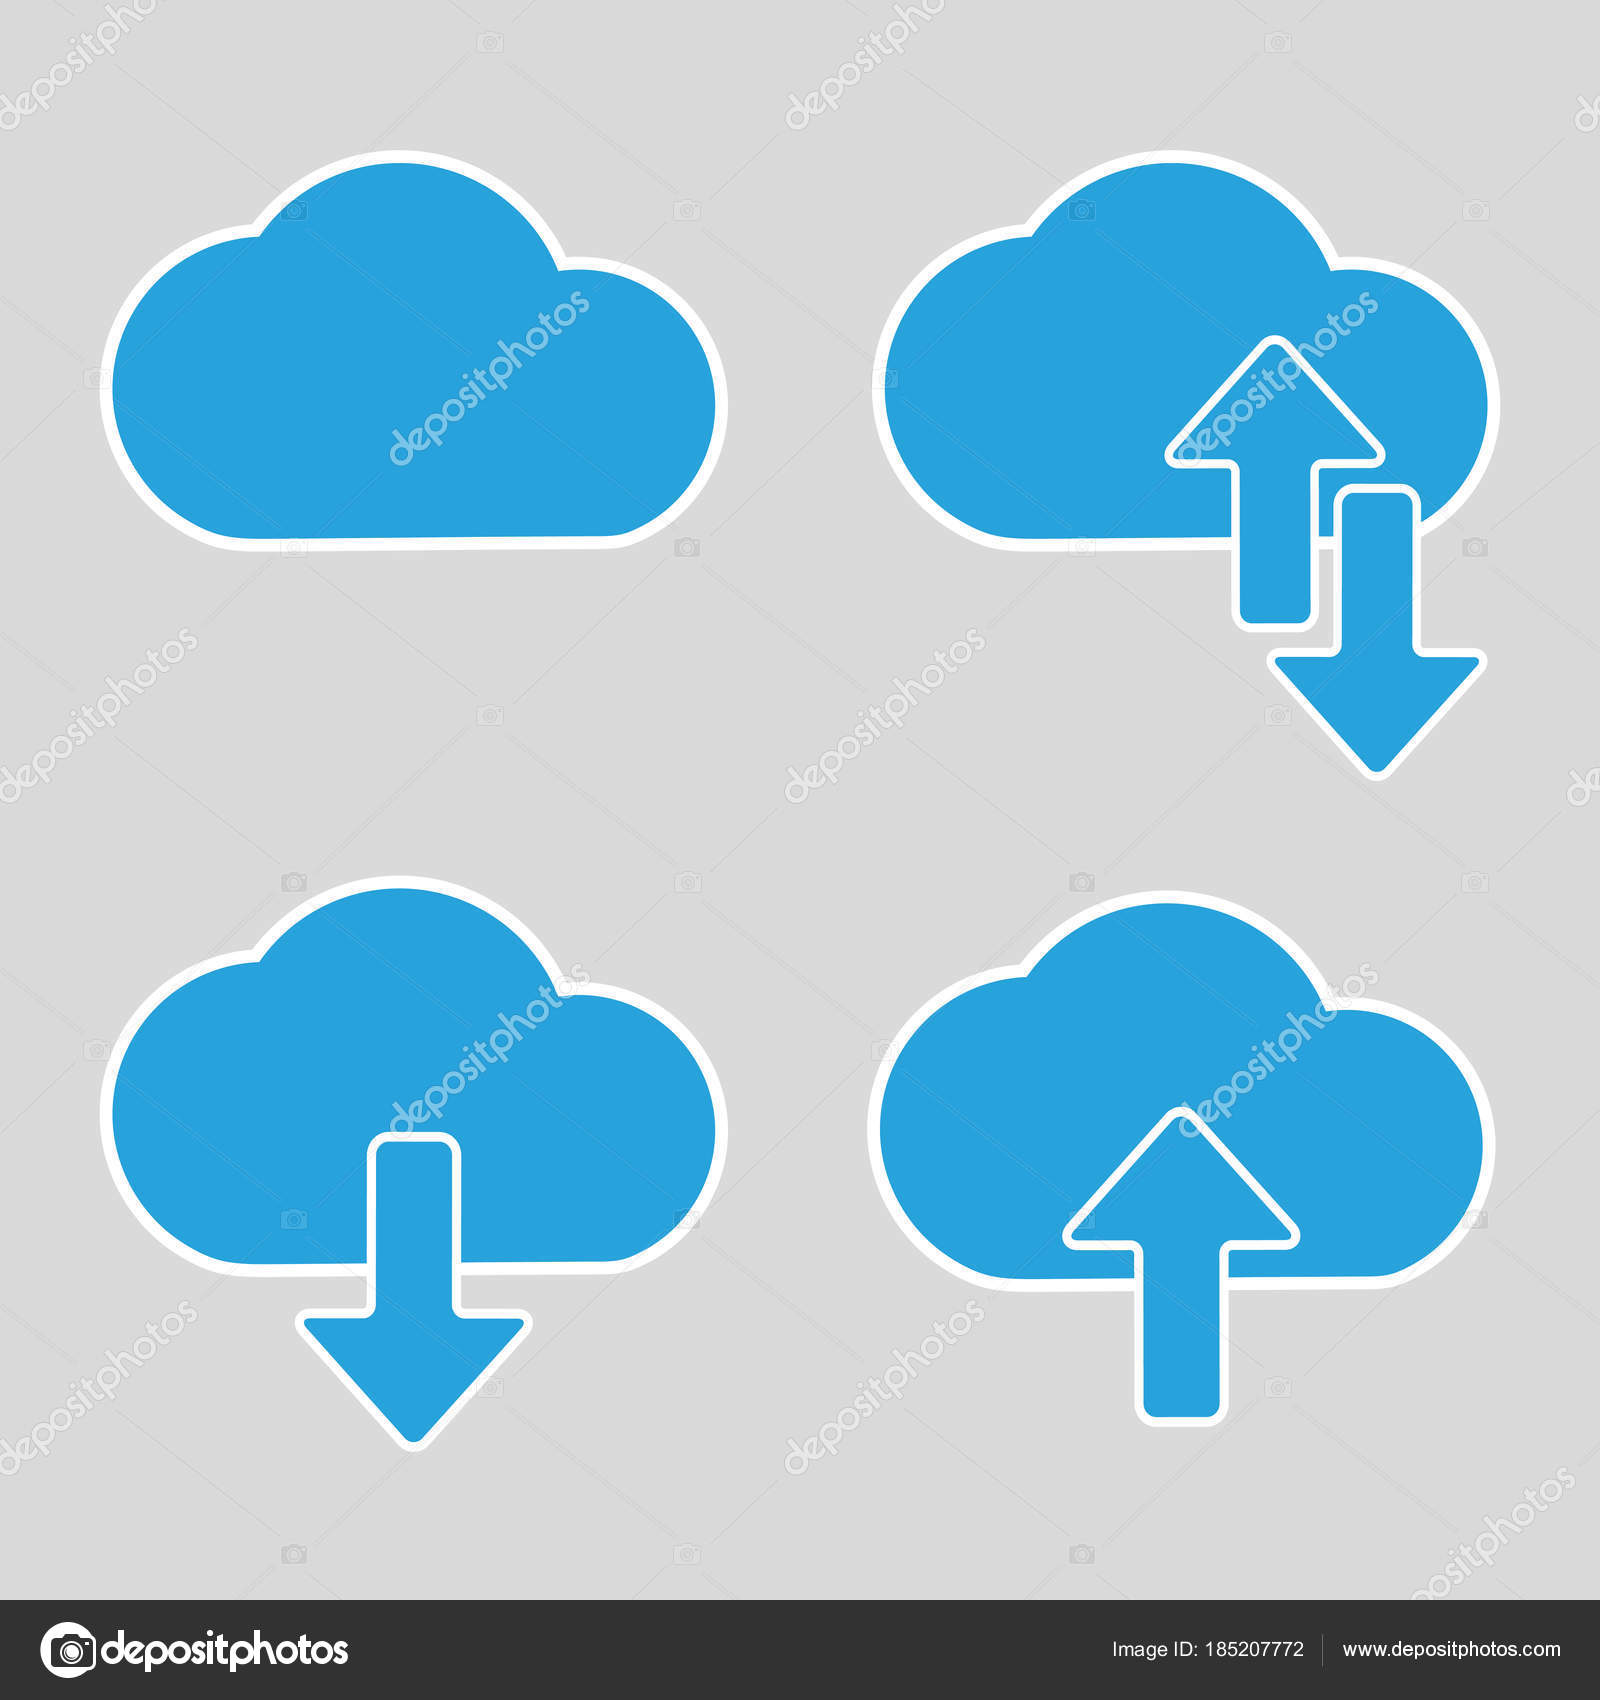 cloud graphic design vector illustration gray background stock rh depositphotos com cloud graphic png cloud graphic images